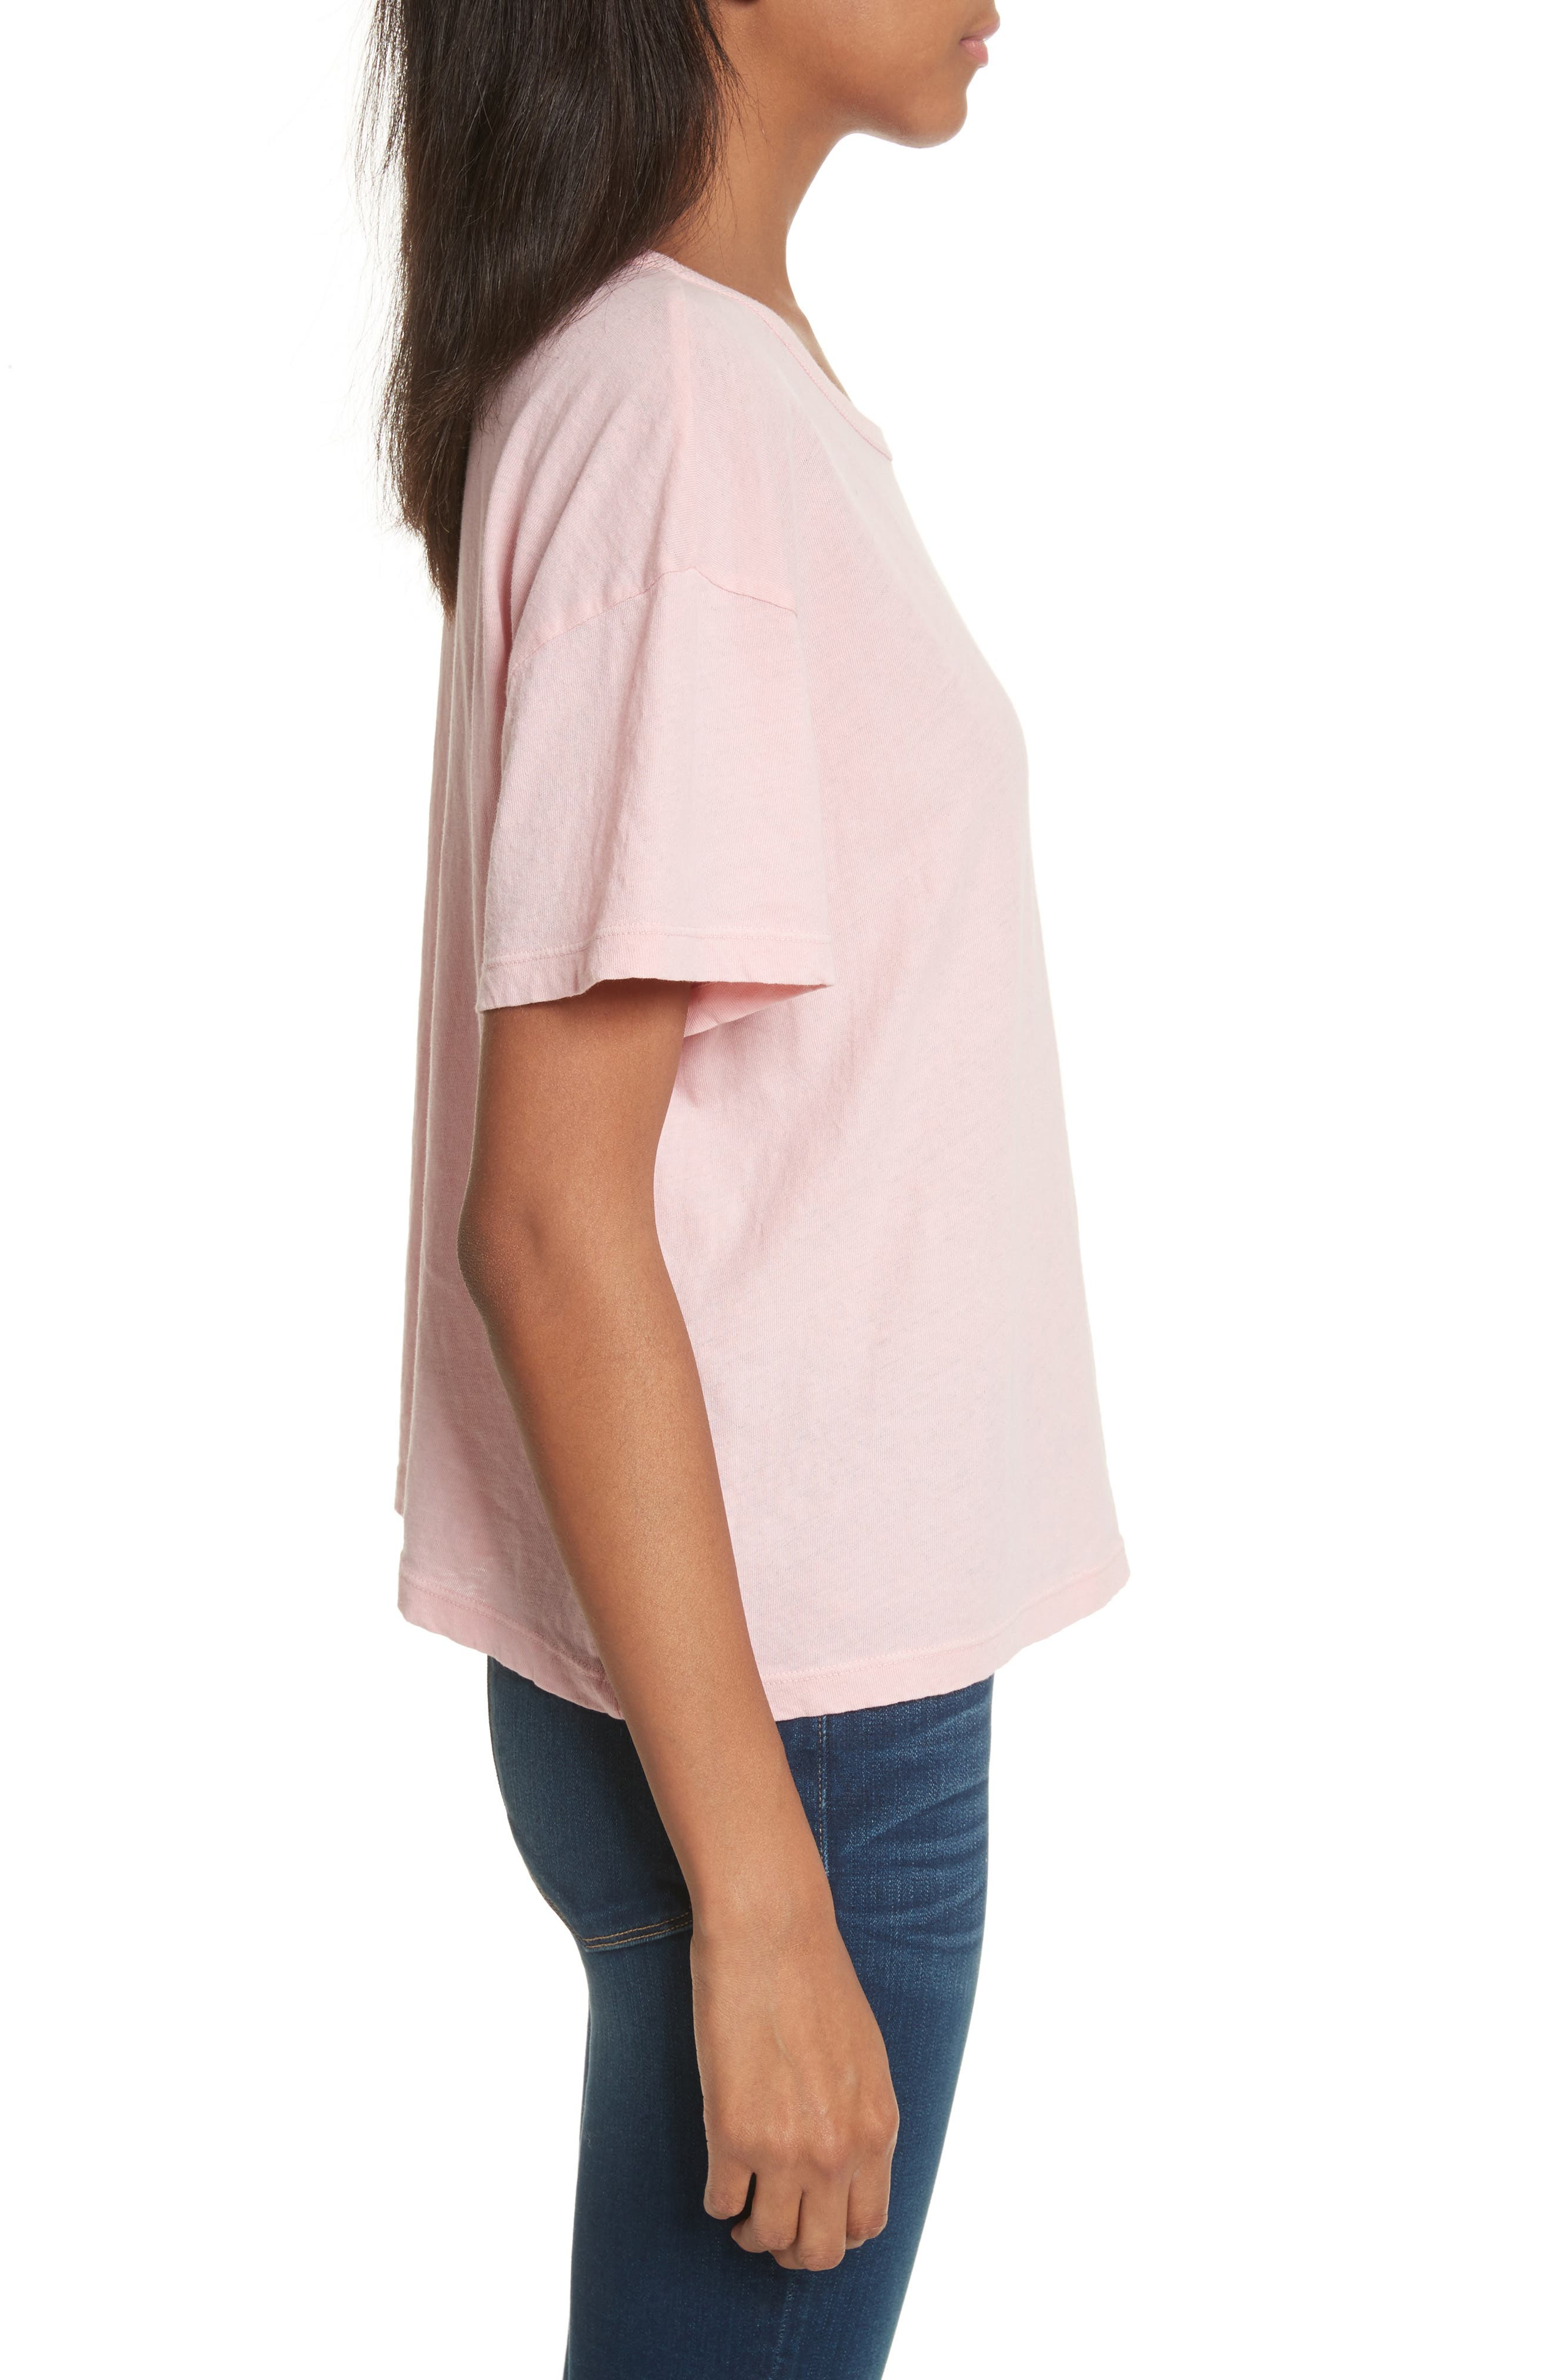 Chopped Crew Tee,                             Alternate thumbnail 3, color,                             Faded Light Pink Exclusive